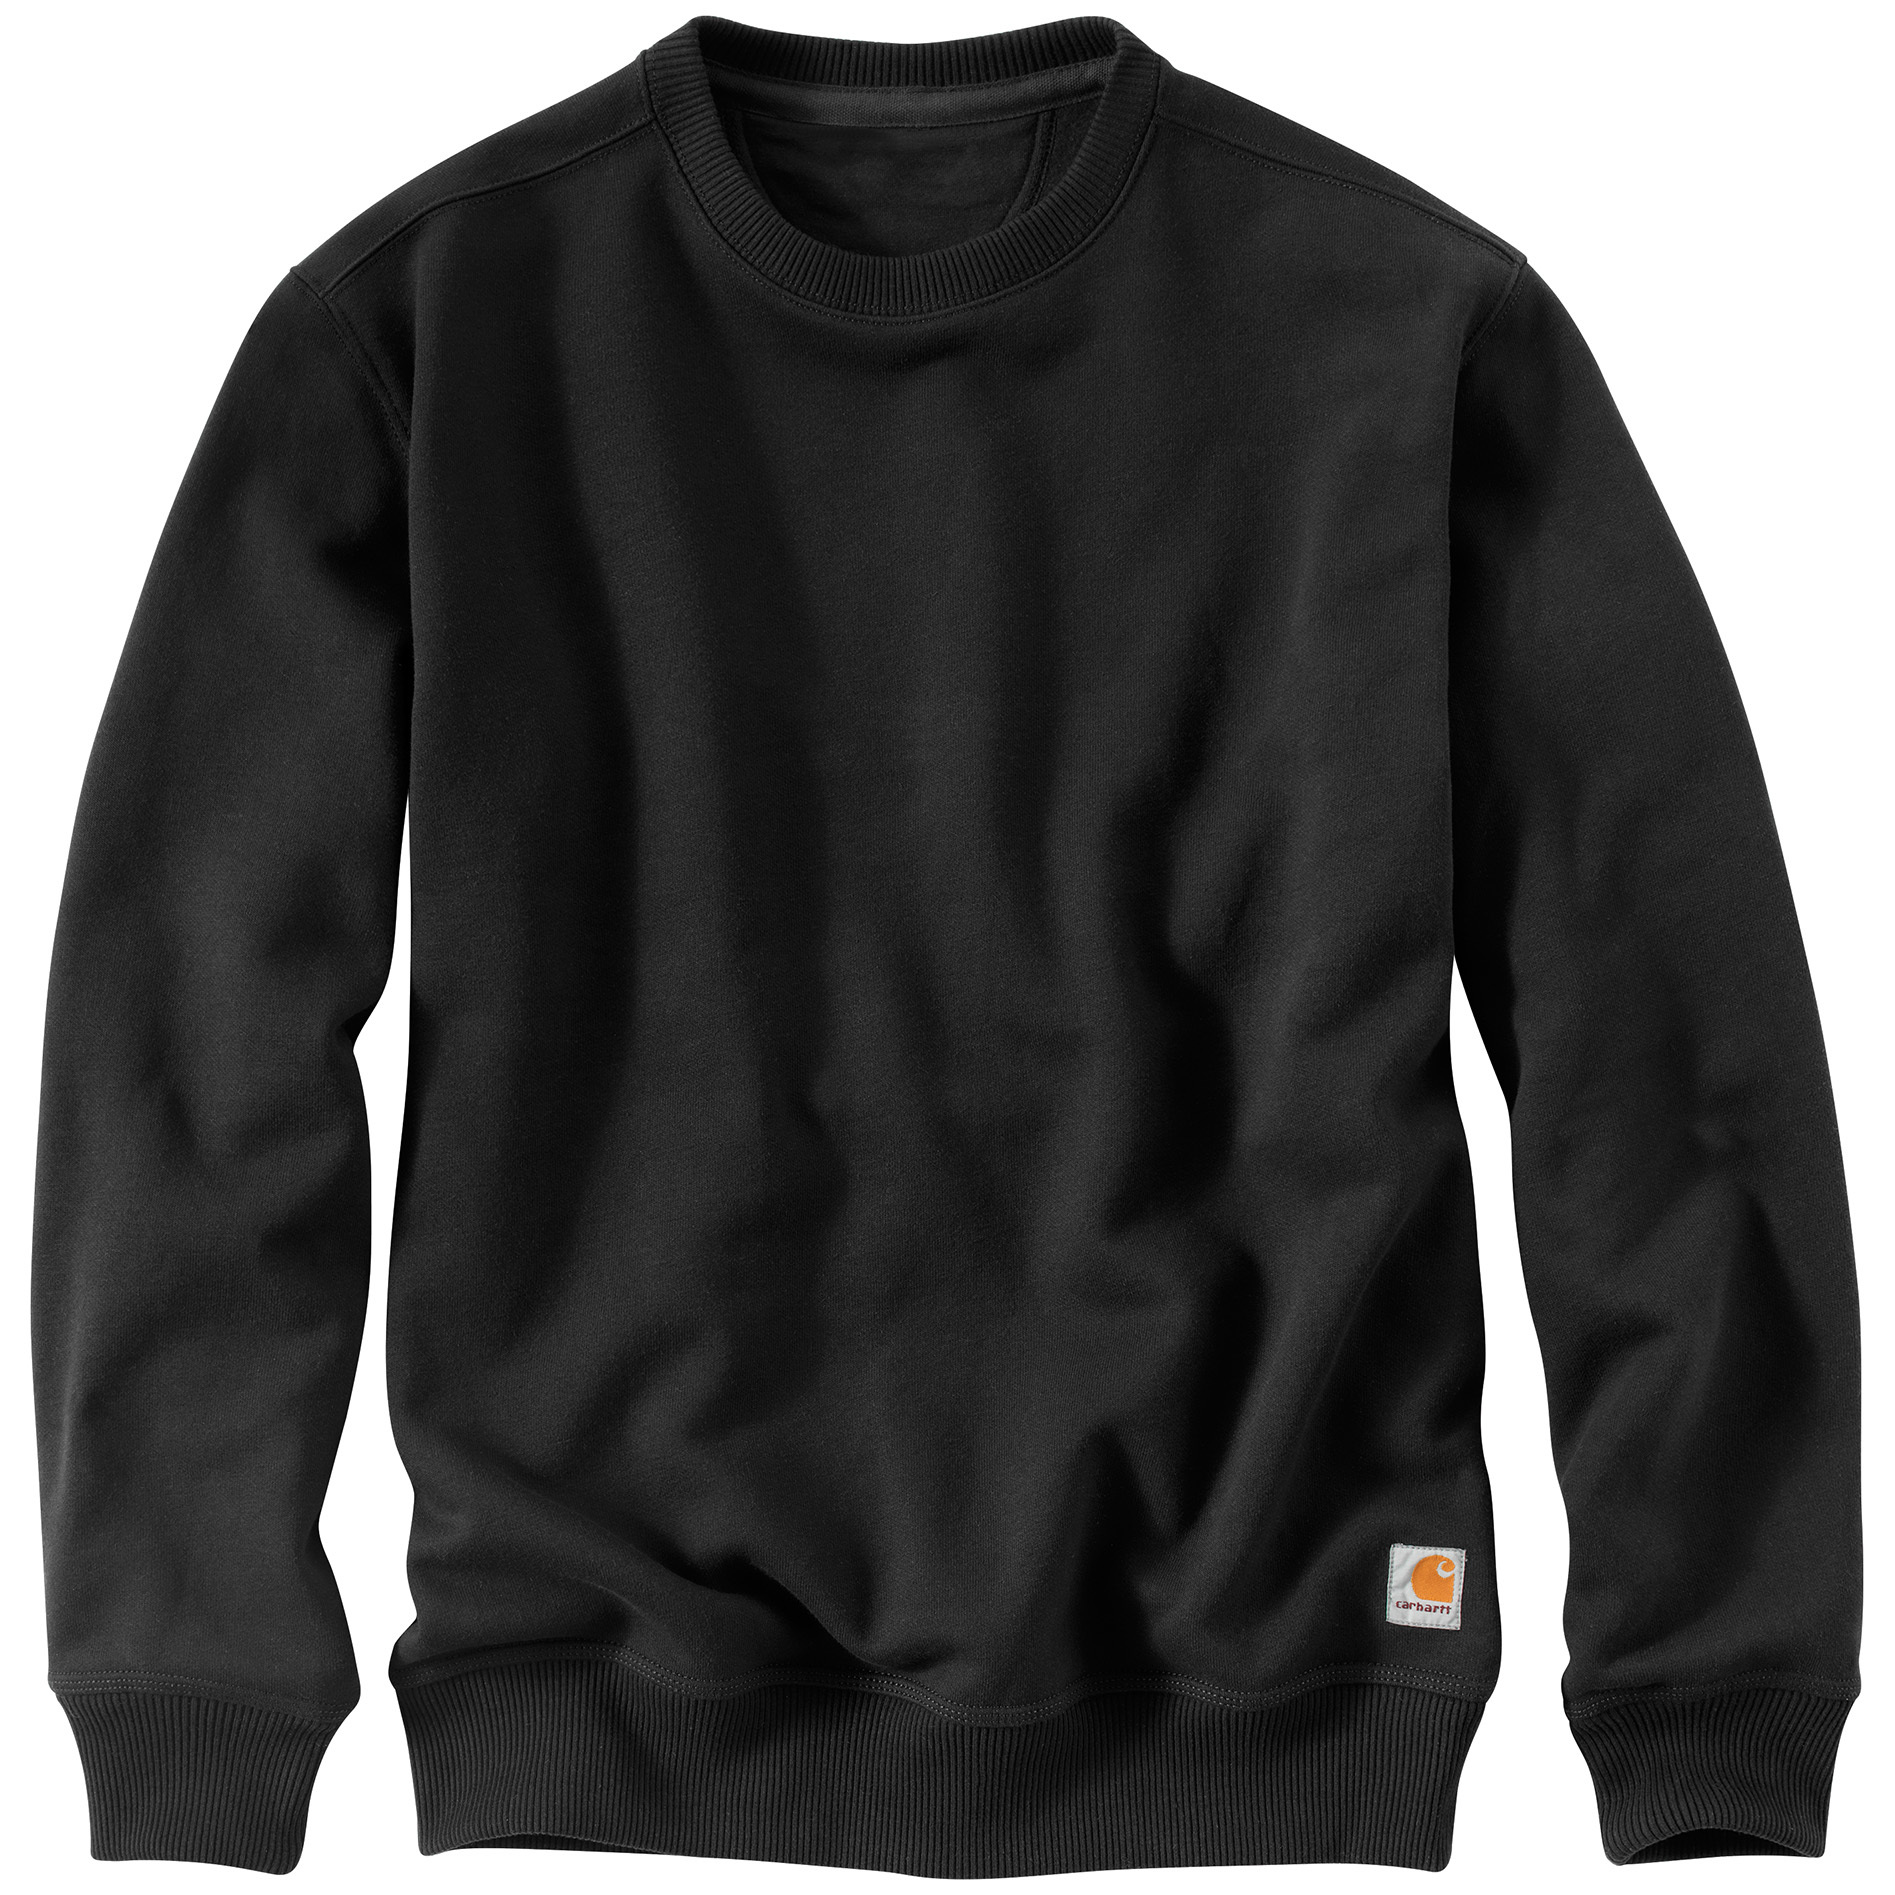 Carhartt Rain Defender Paxton Heavyweight Crewneck Sweatshirt. Turns cold and wet into warm and dry. Carhartt keeps you comfortable. Their Paxton Heavyweight Crewneck Sweatshirt is given a weather-resistant boost by way of its Rain Defender durable water-repellent finish, while the 13-oz. 80/20 cotton / polyester blend holds up its end in the warmth department.More:13-oz., 80/20 cotton / polyester blend with Rain Defender durable water-repellent finish Stretchable, spandex reinforced rib knit cuffs and waistband Carhartt strong triple-stitched main seams Machine wash / dry. Imported. State Size, as available in the Shopping Cart. - $39.99